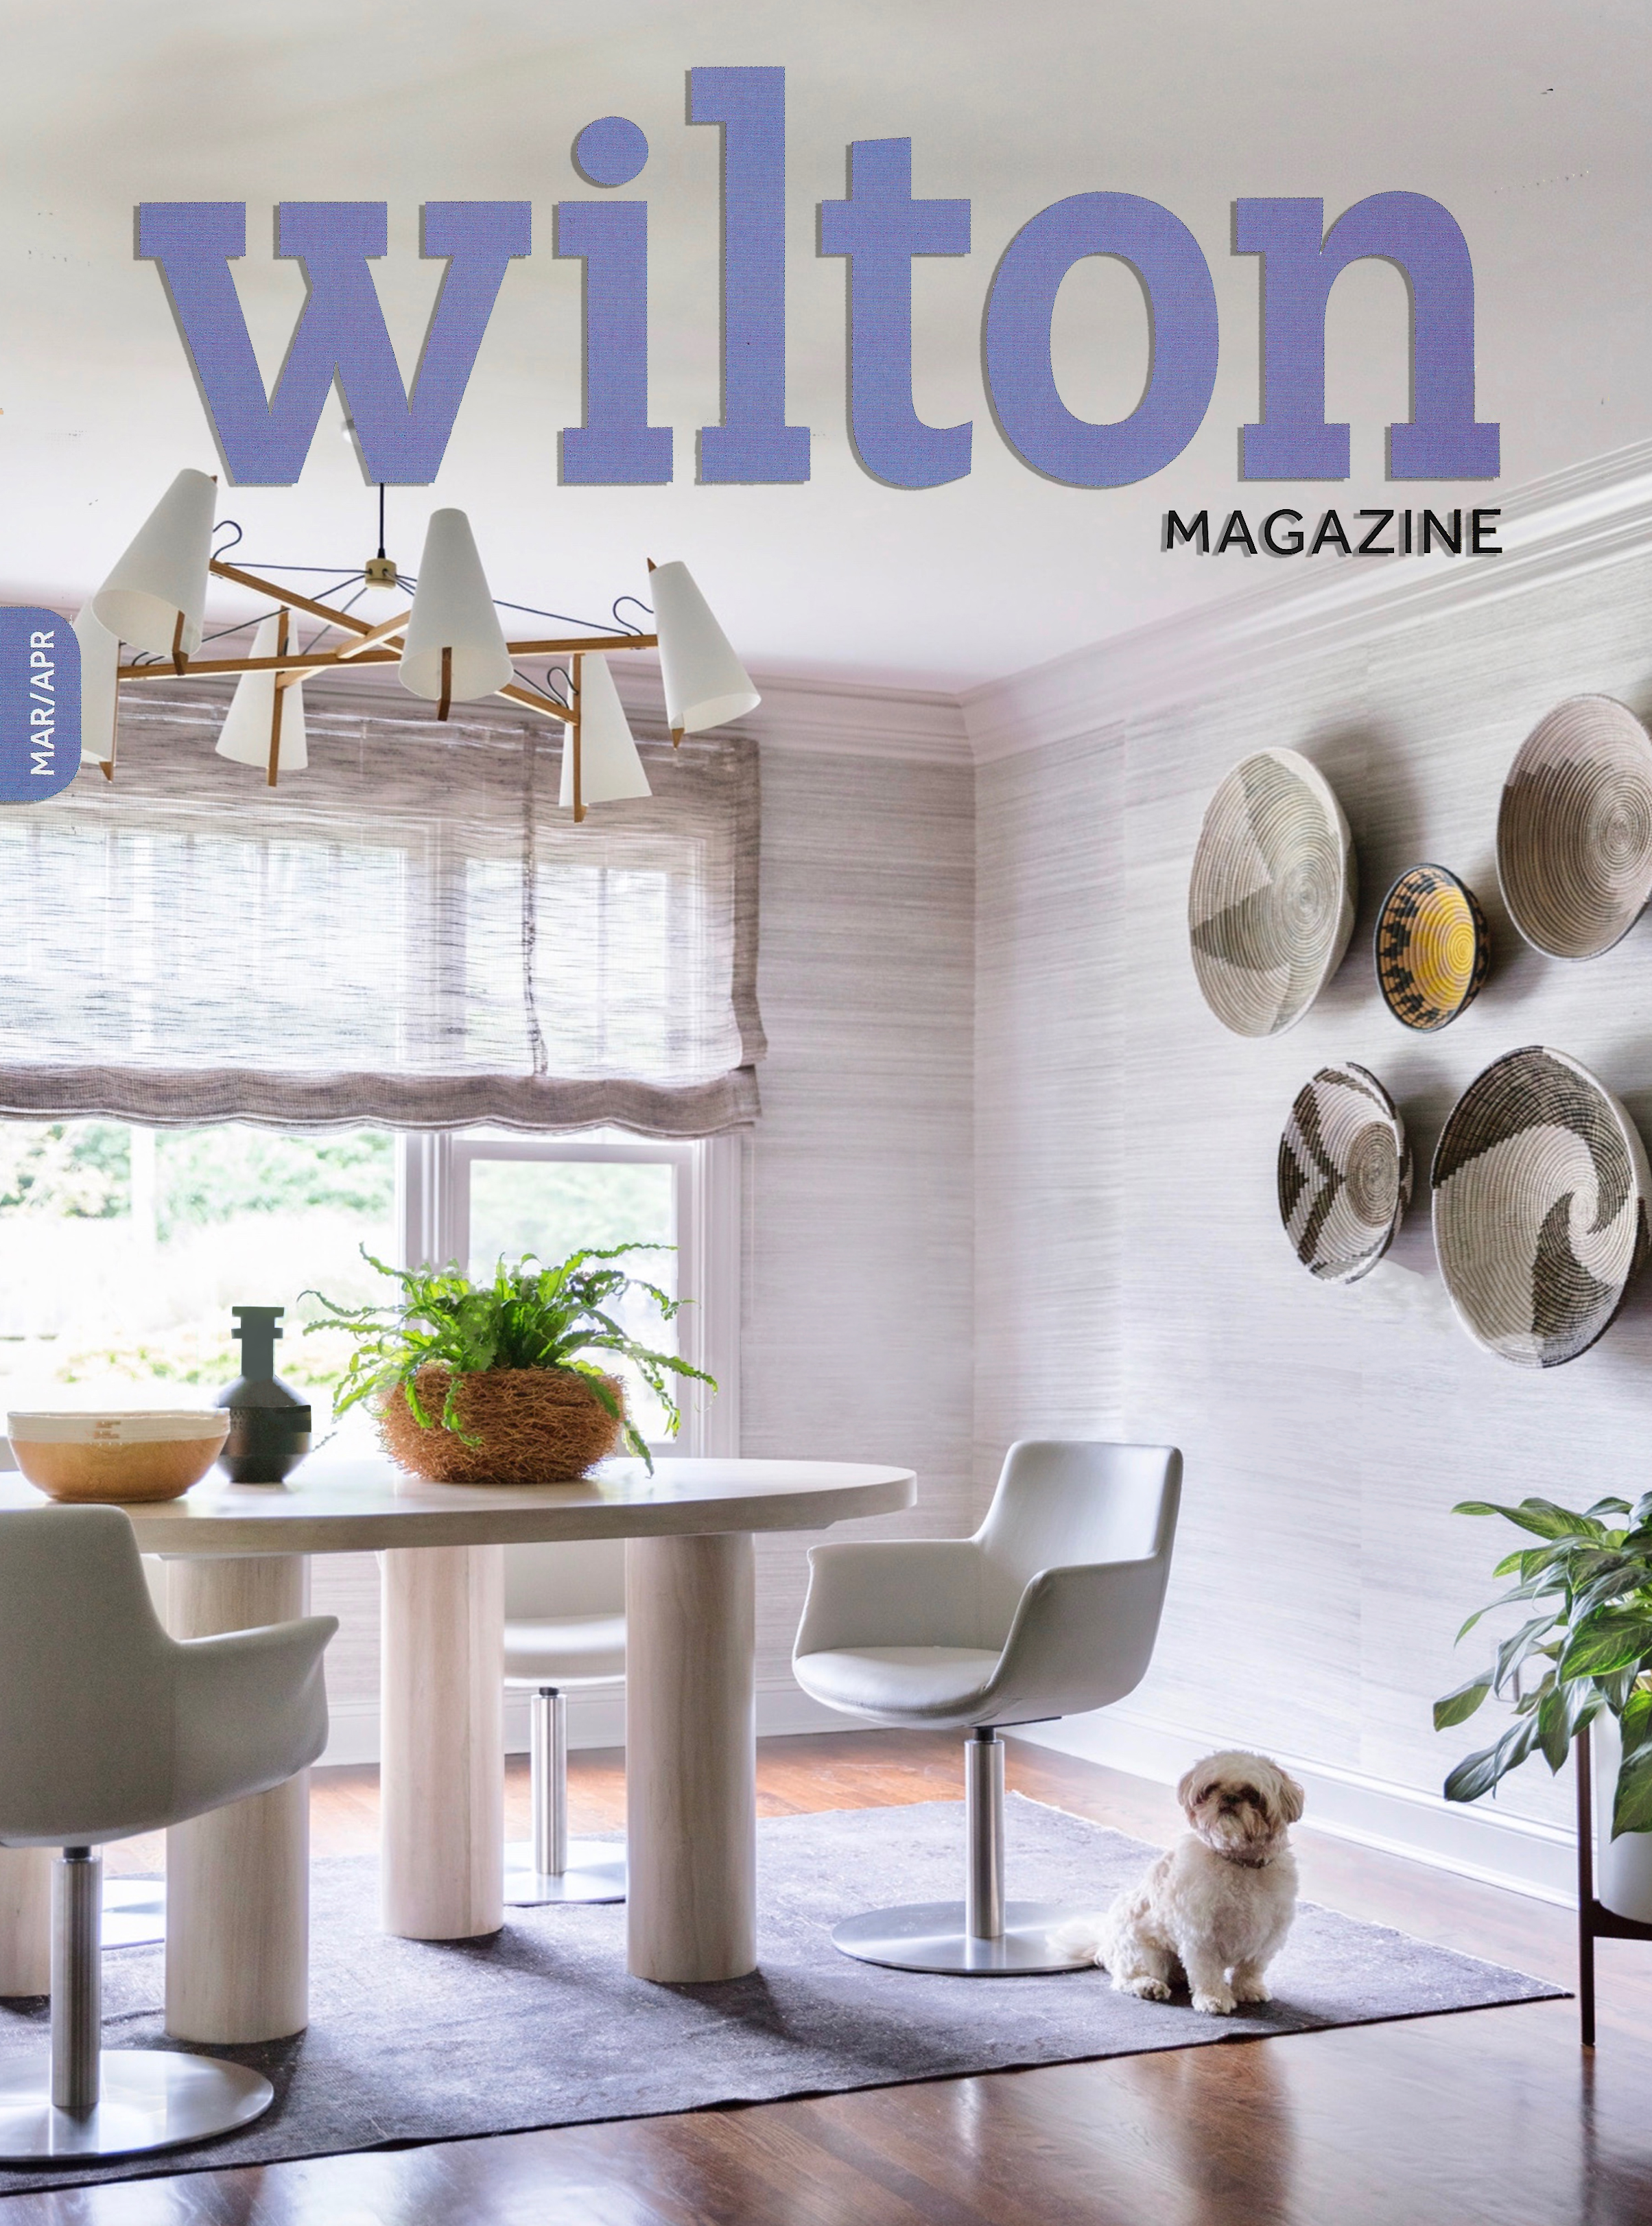 Wilton Magazine - Mar/Apr 2019